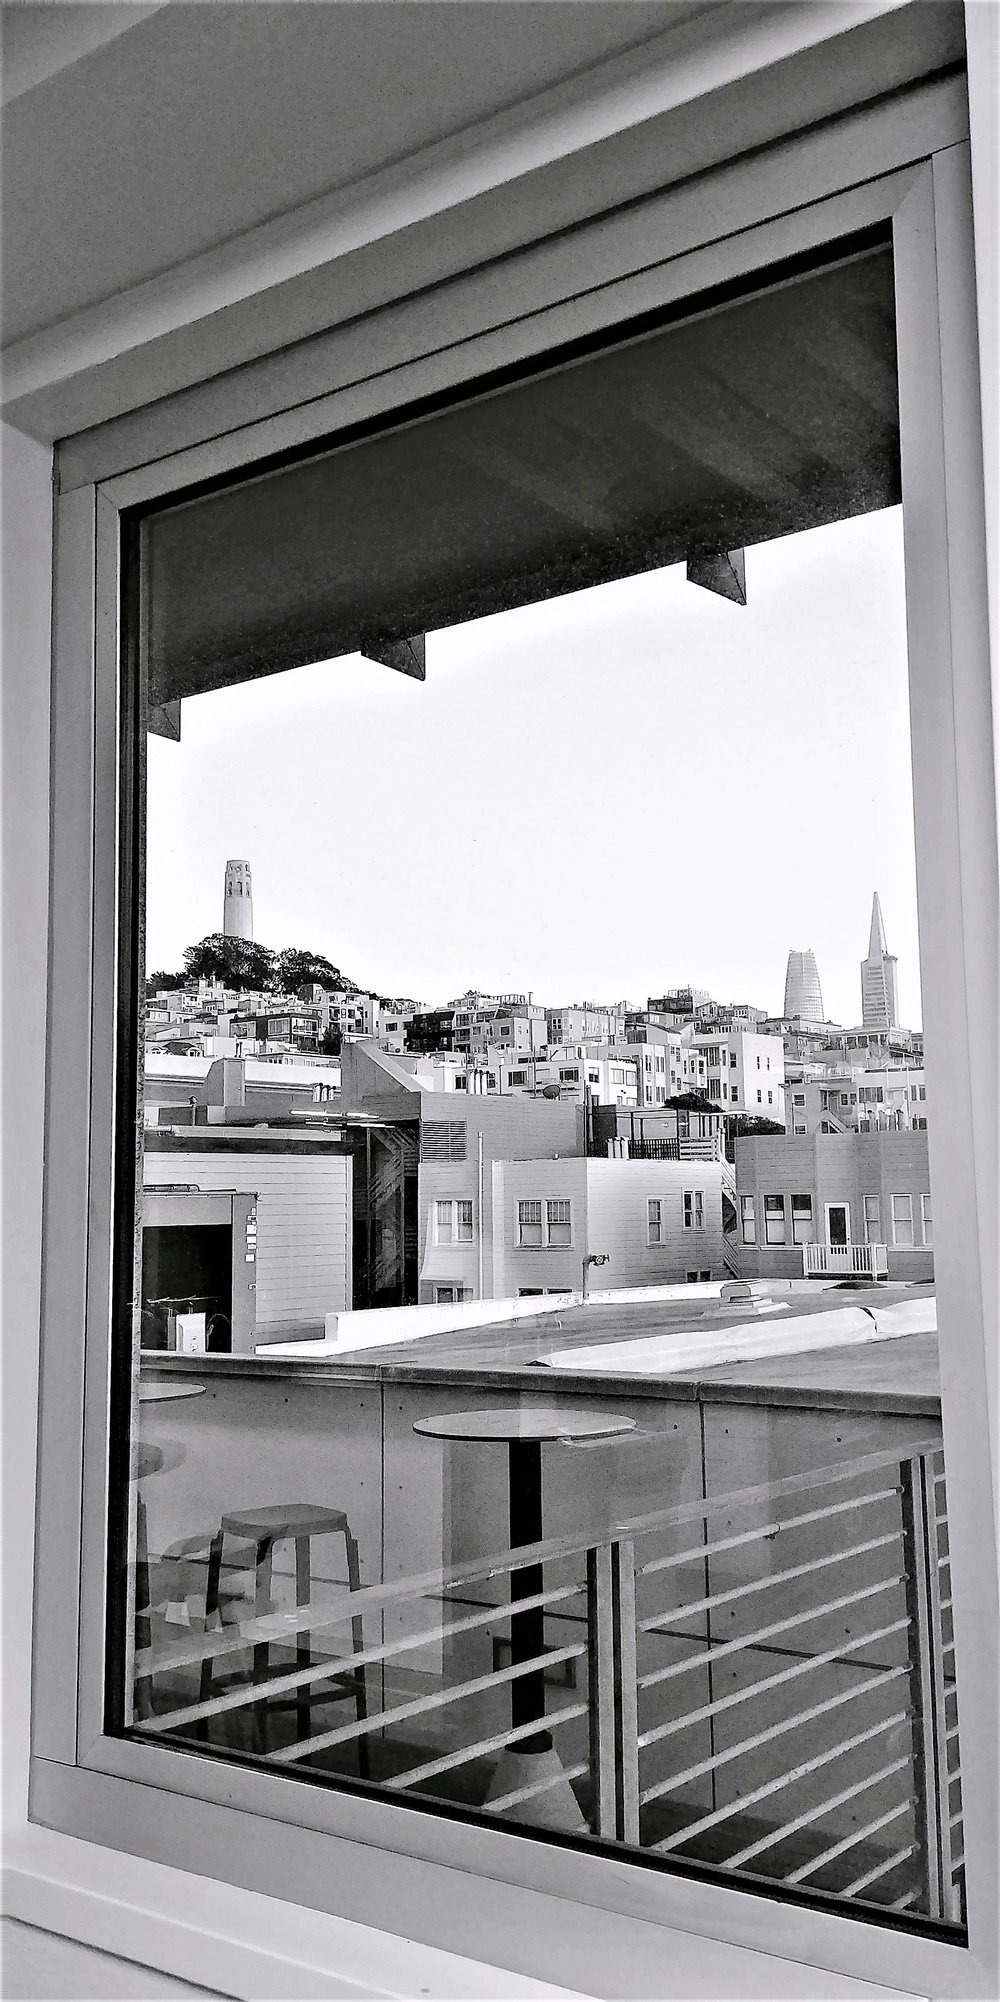 sf-skyline-high-contrast-black-and-white-photography-henri-cartier-bresson-vintage-sf.jpg